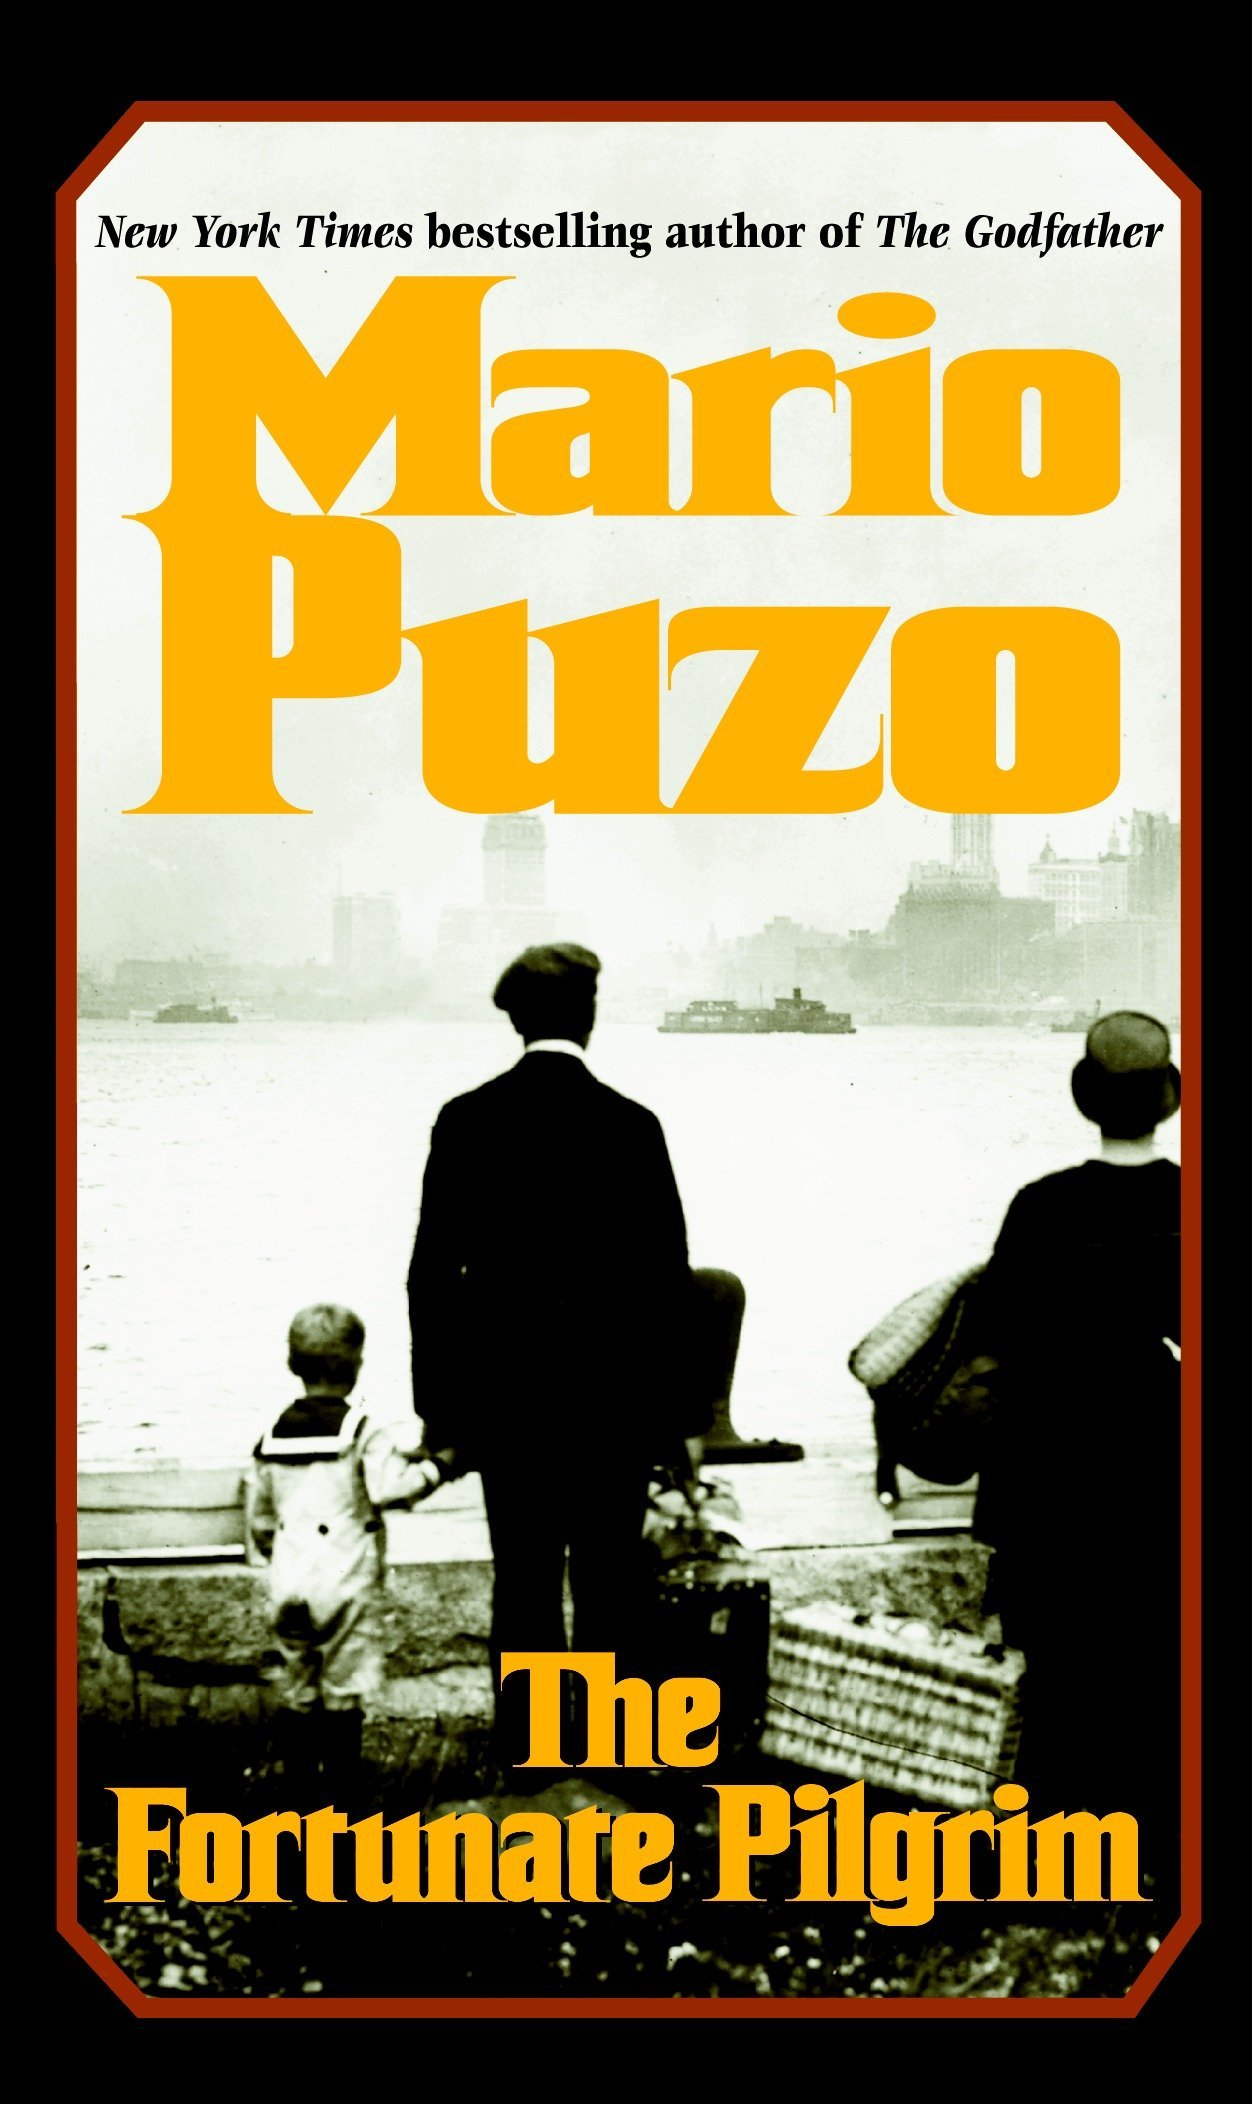 Amazon.com: The Fortunate Pilgrim: A Novel (9780345476722): Mario Puzo: Books